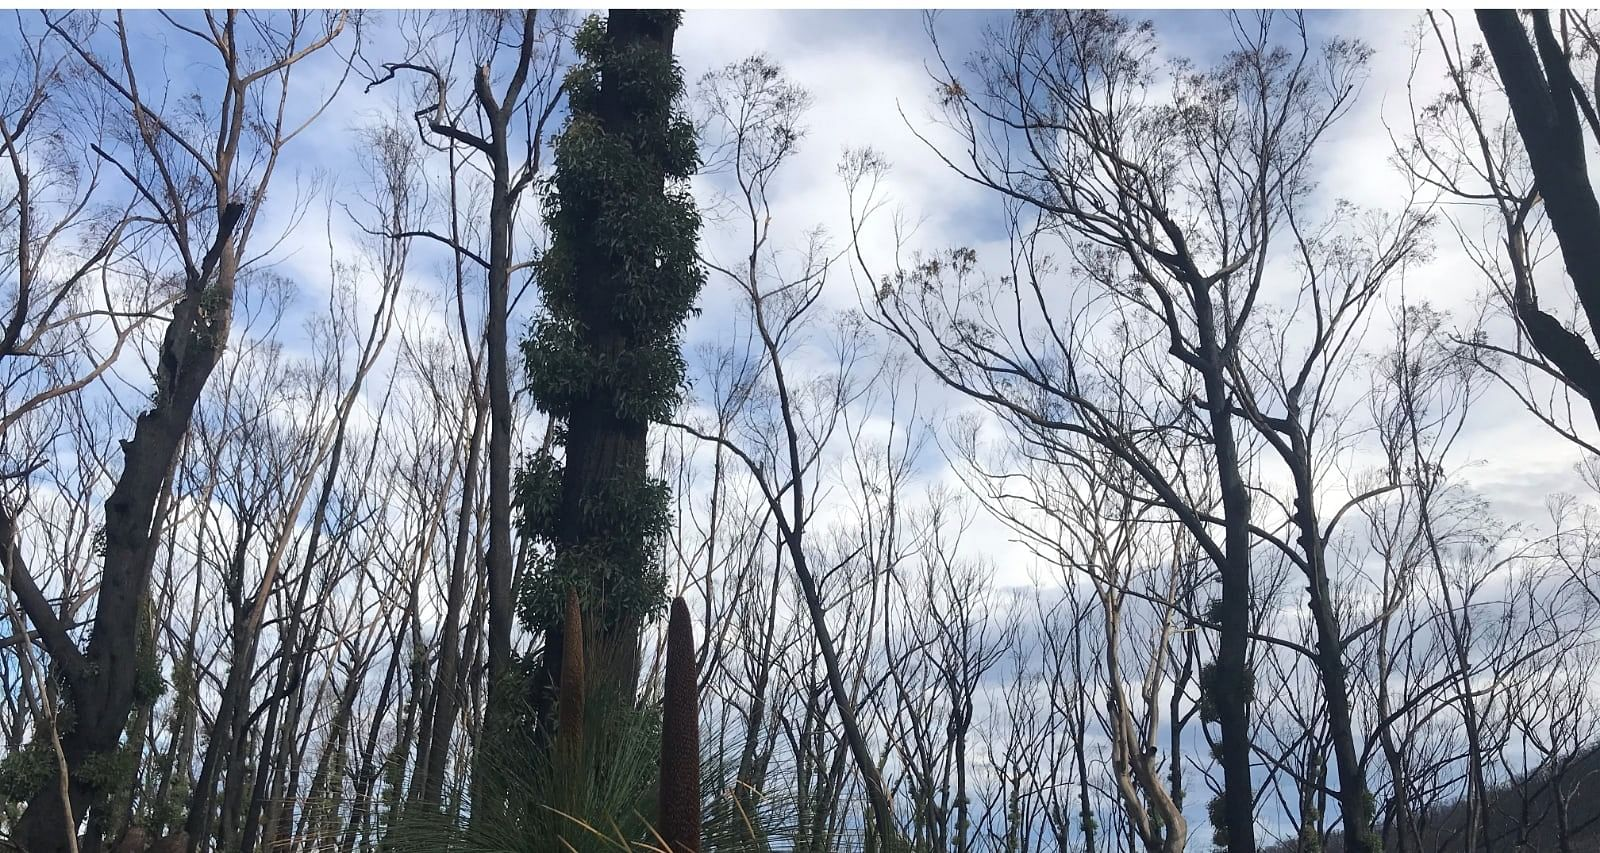 Burnt trees with regrowth on Mount Imlay.